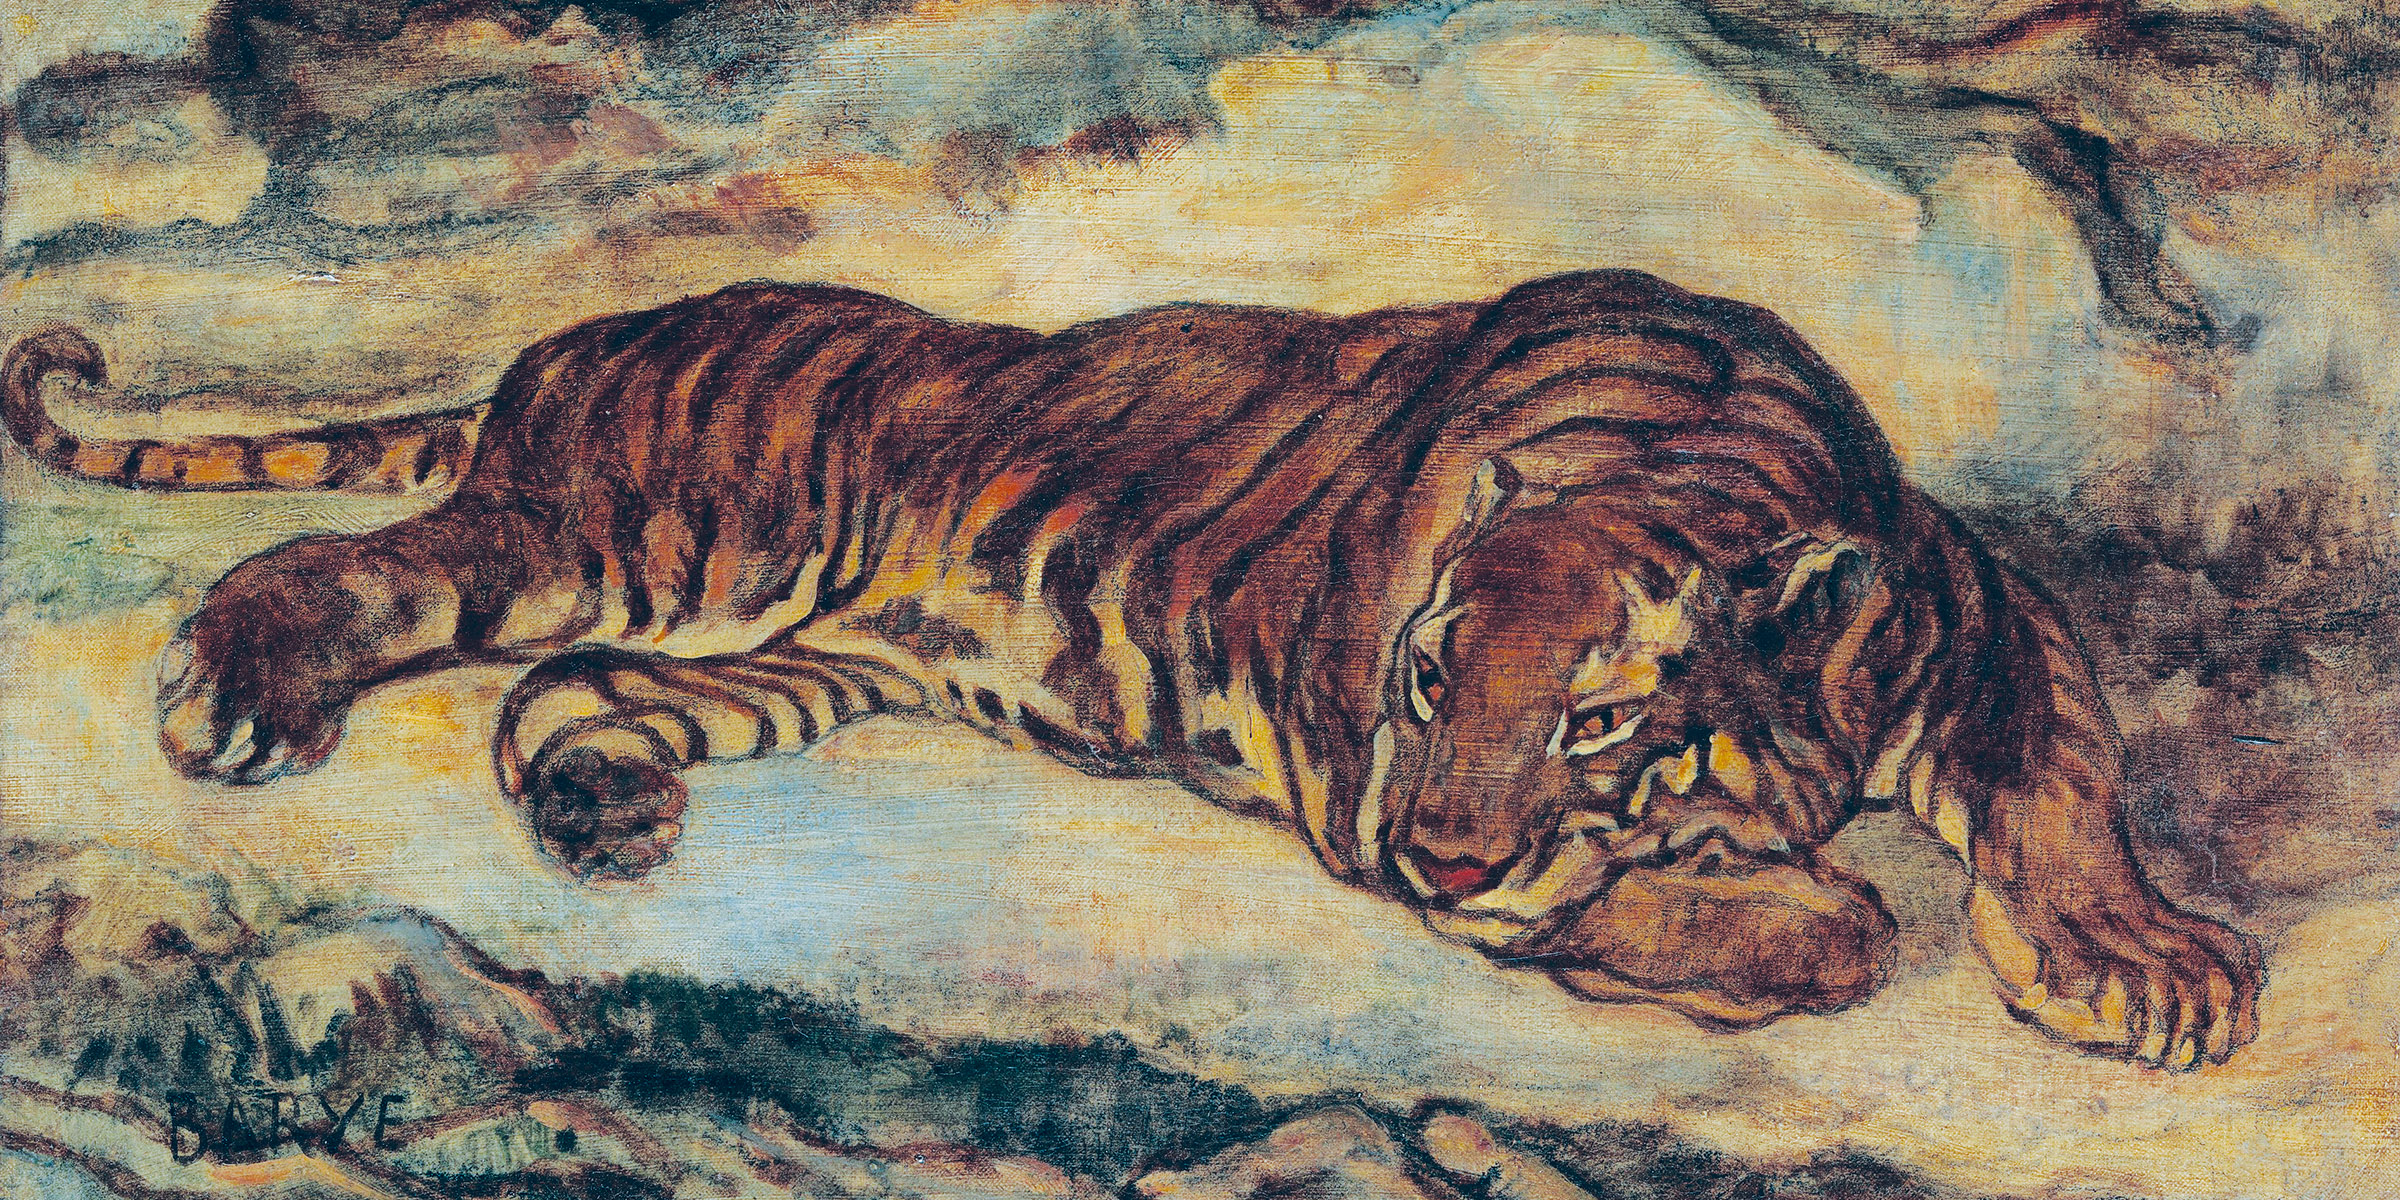 Tiger in Repose, by Antoine-Louis Barye, c. 1860.